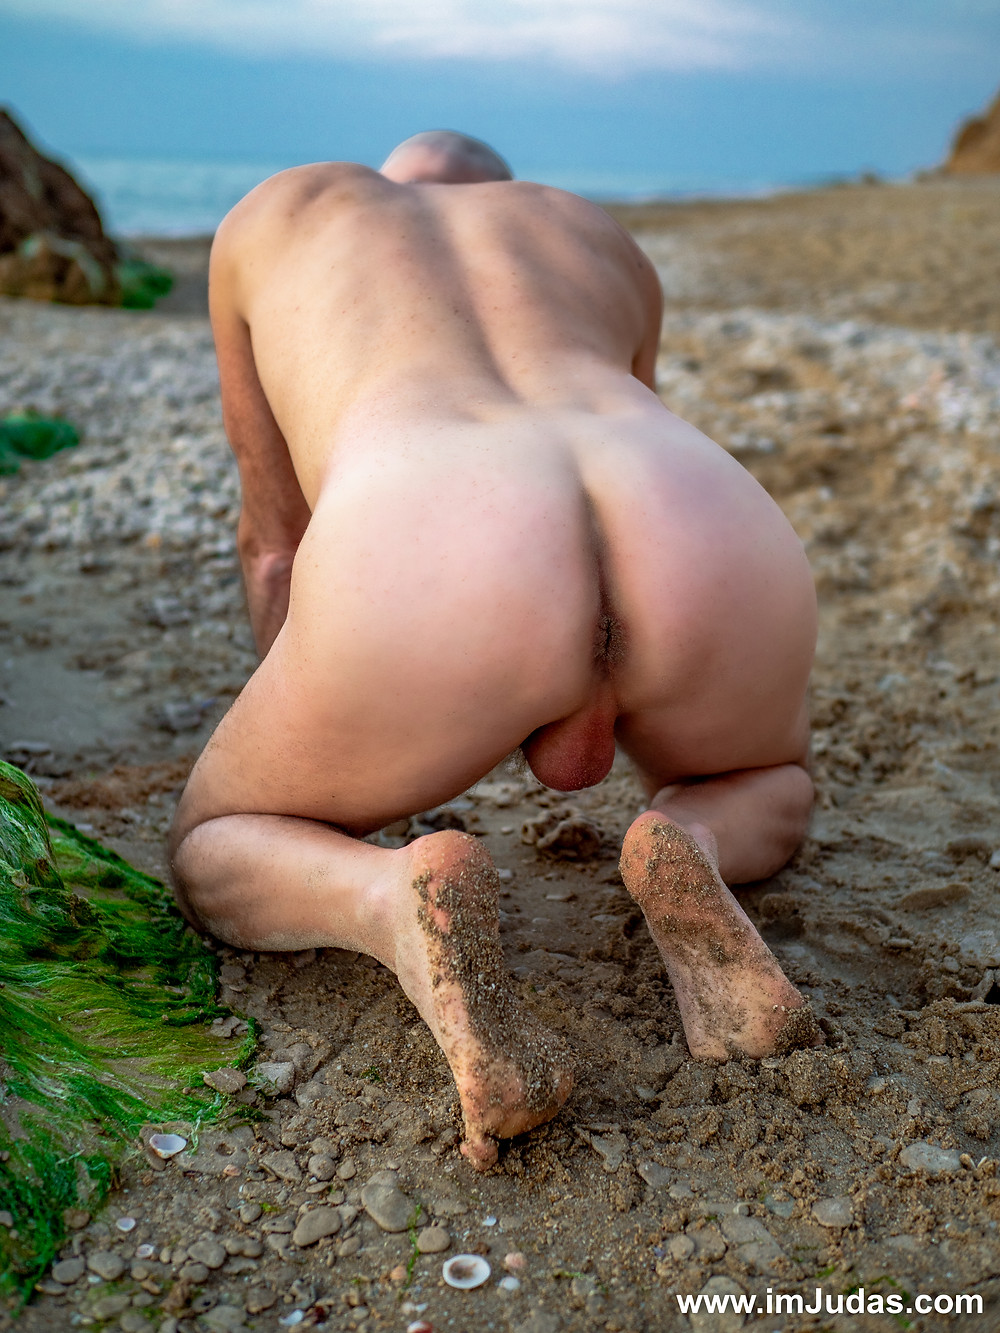 Naked in doggie at the beach, showing my ass hole